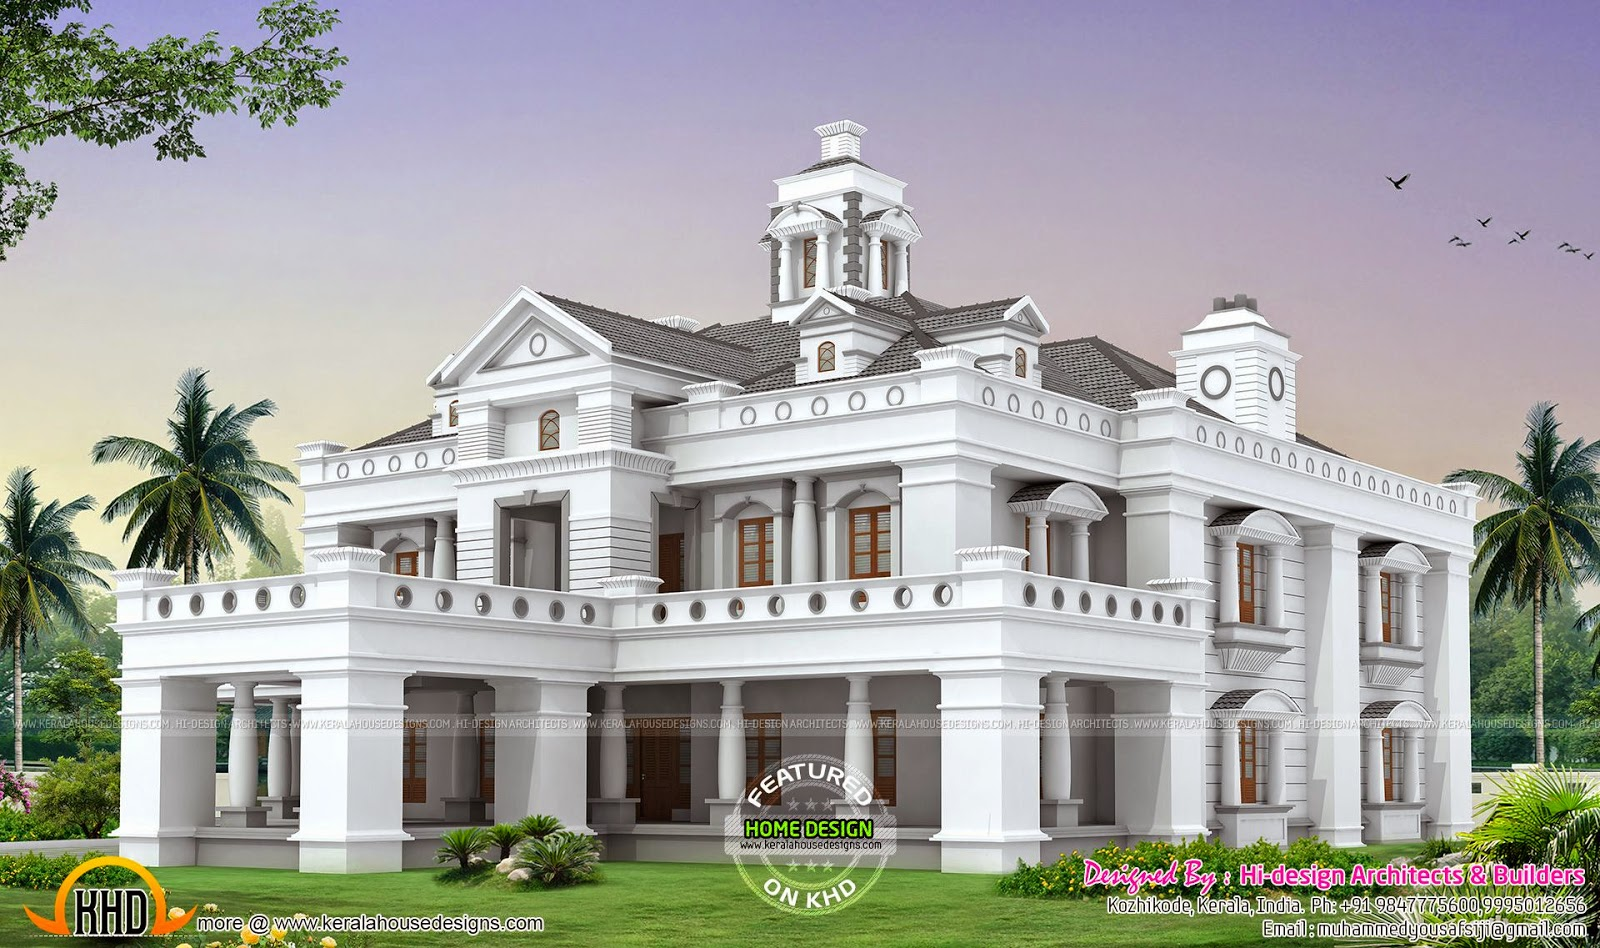 Mansion in kerala kerala home design and floor plans for Mansion house design